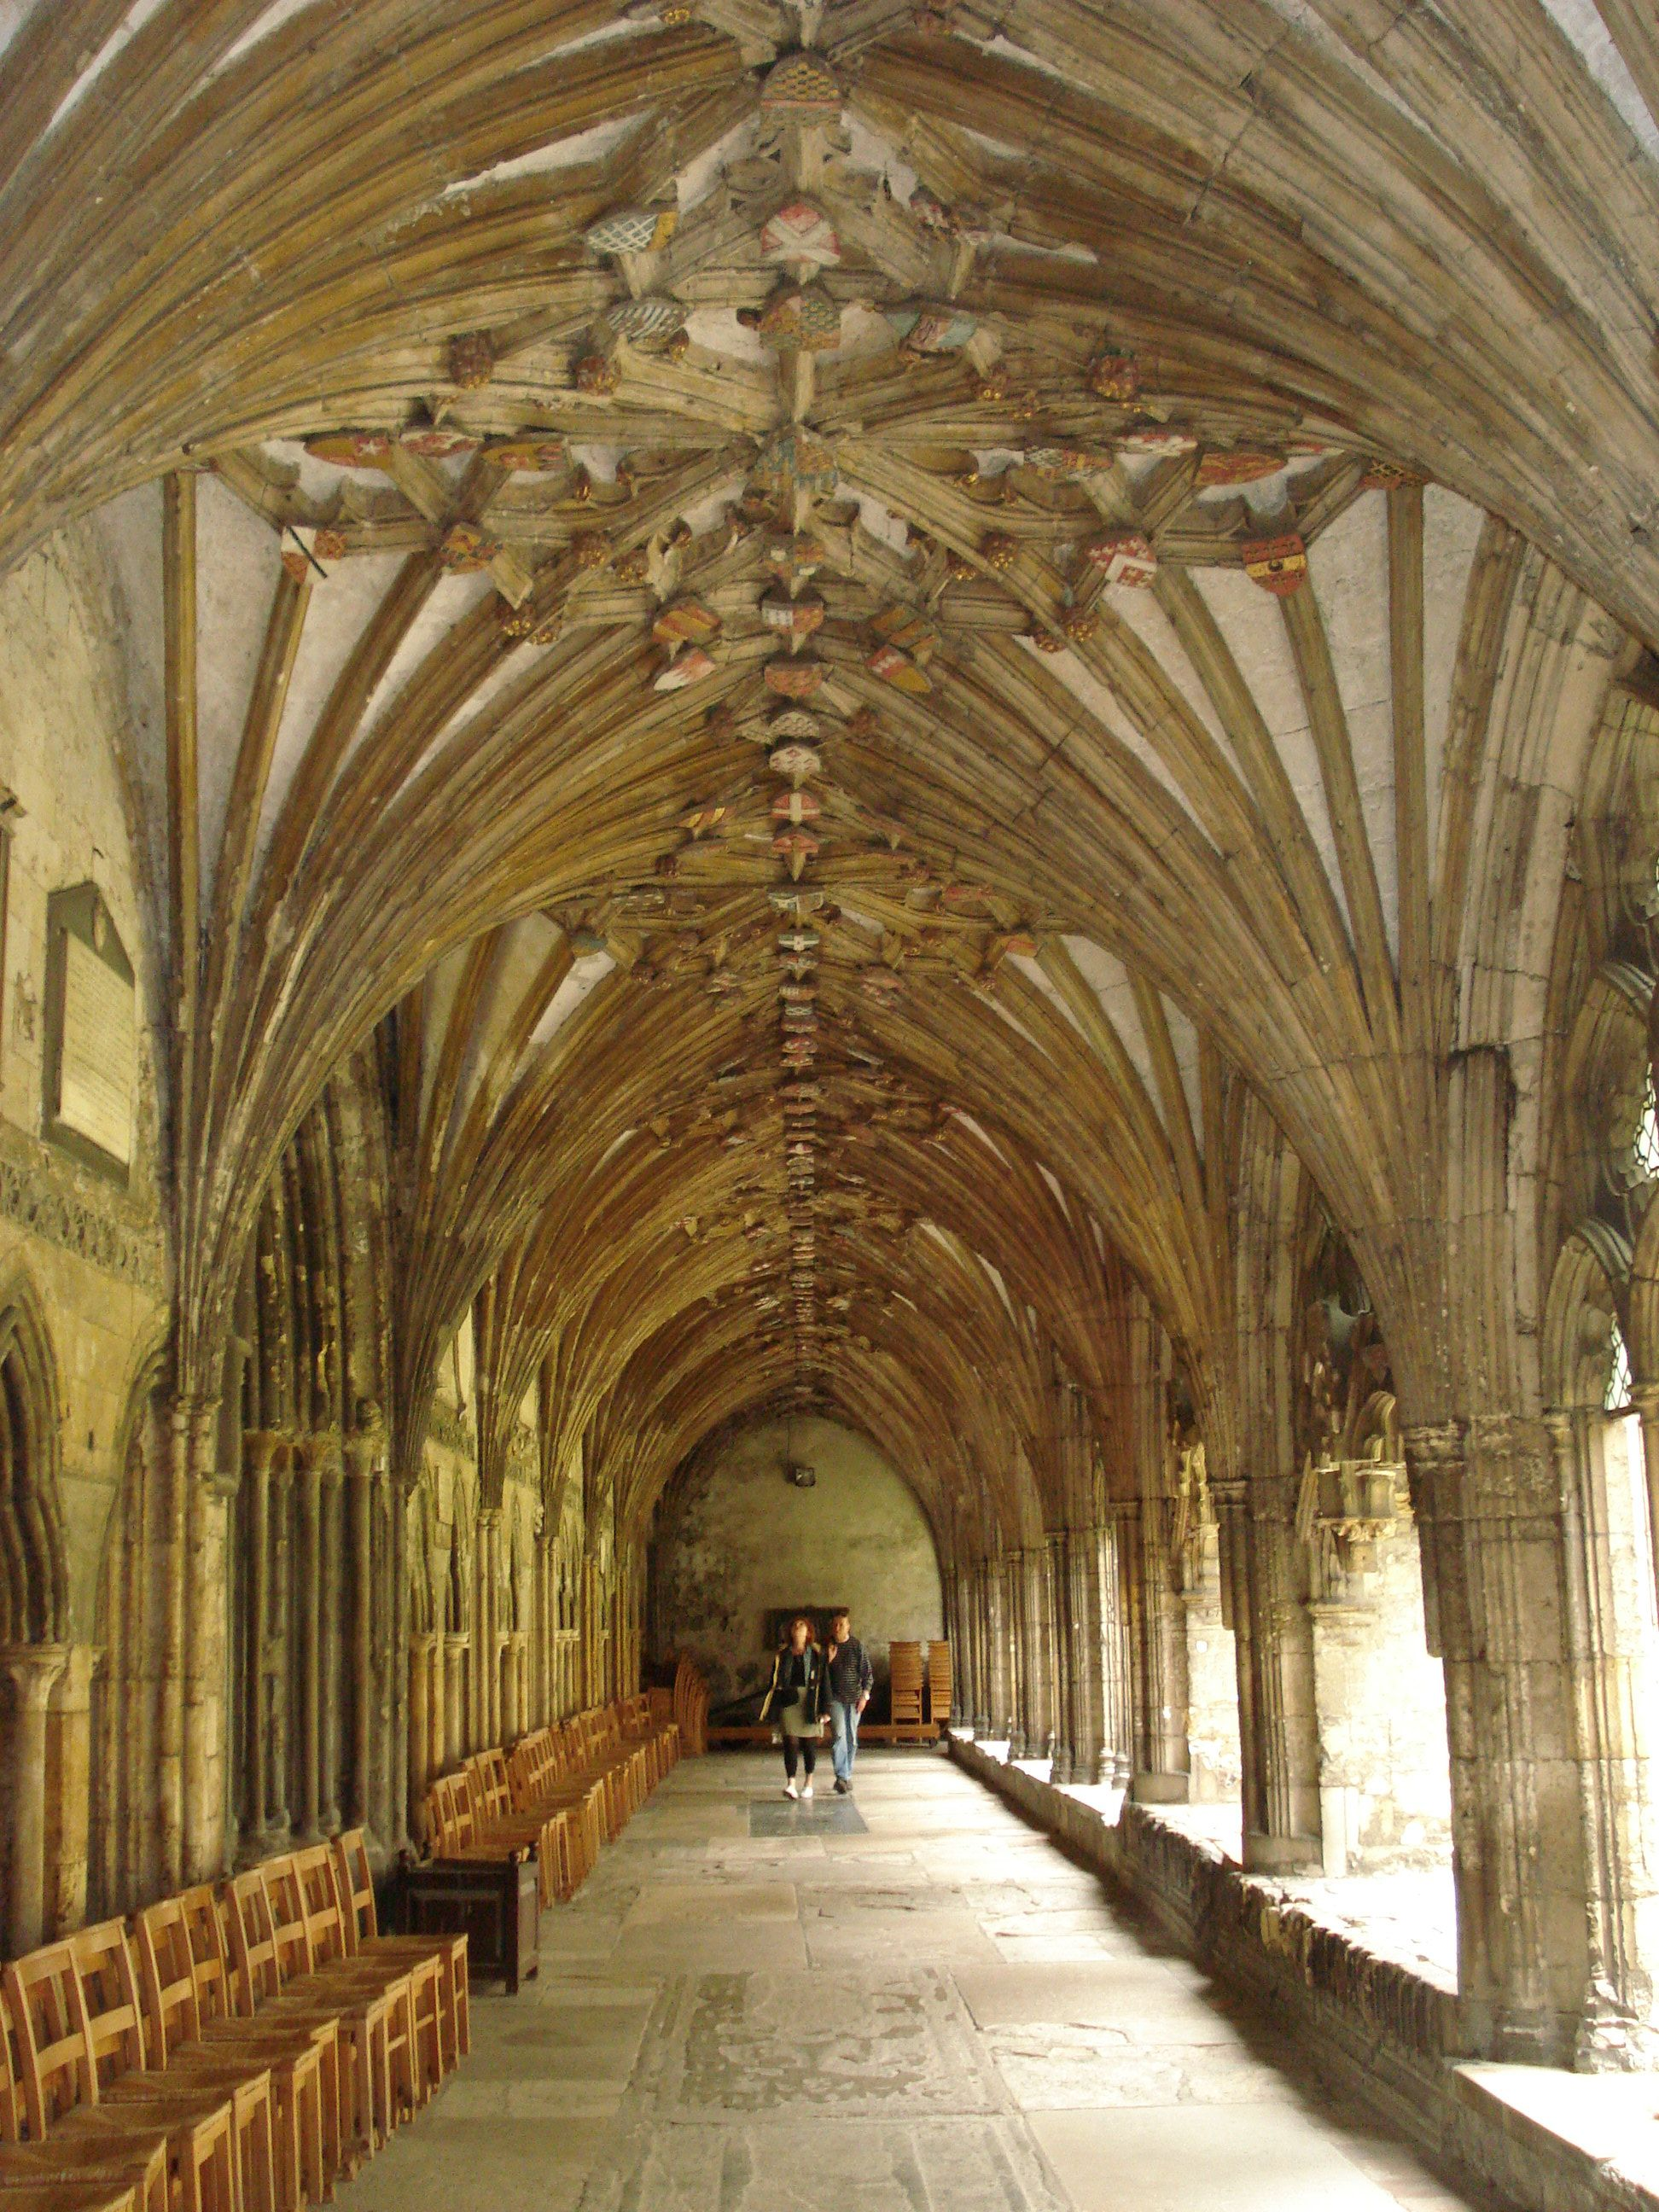 more amazing archways of the cathedral